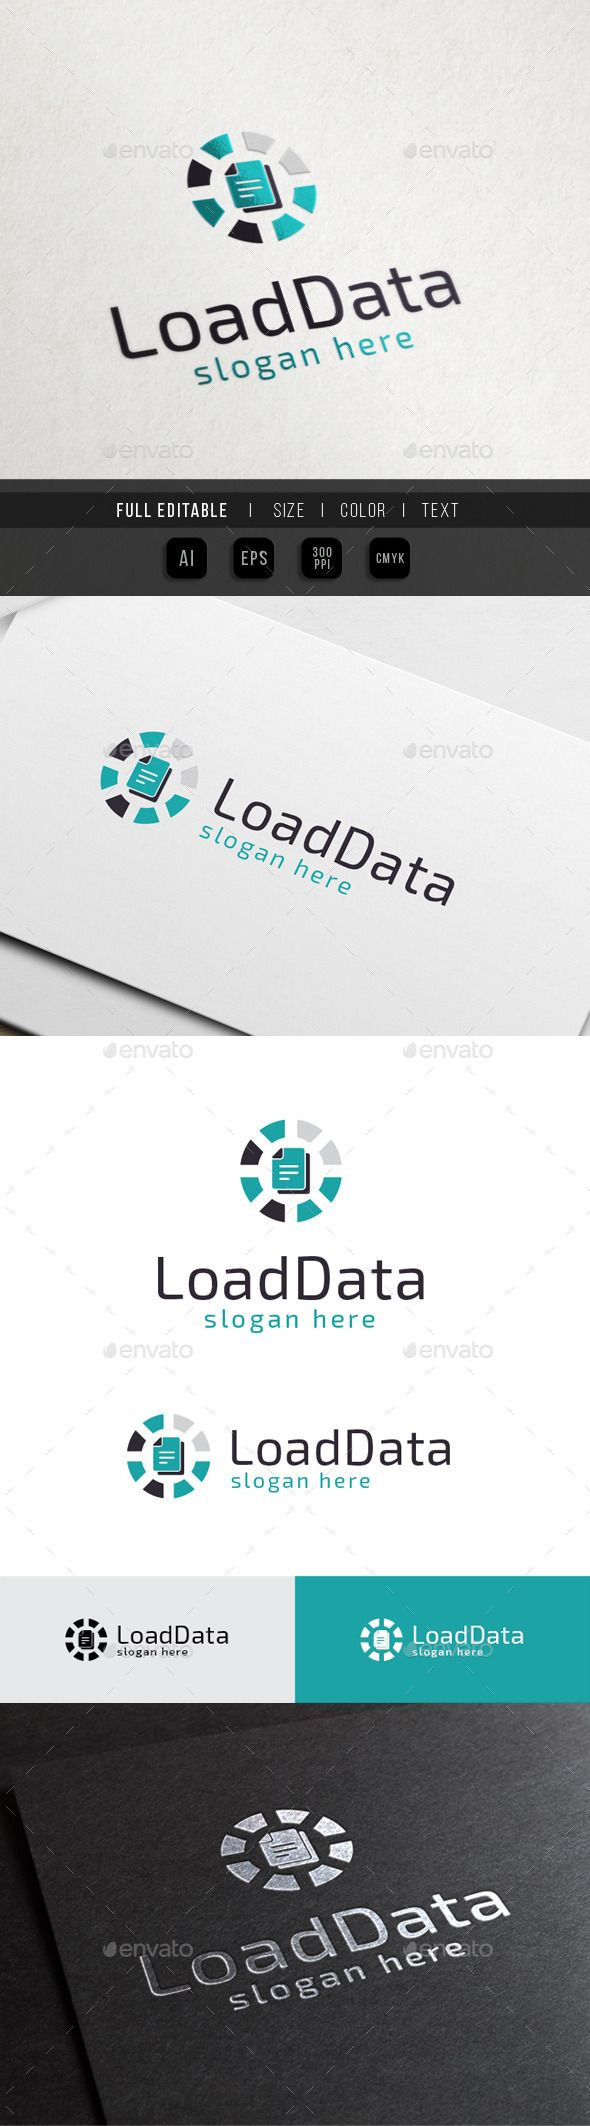 Database Loading - Cloud Data